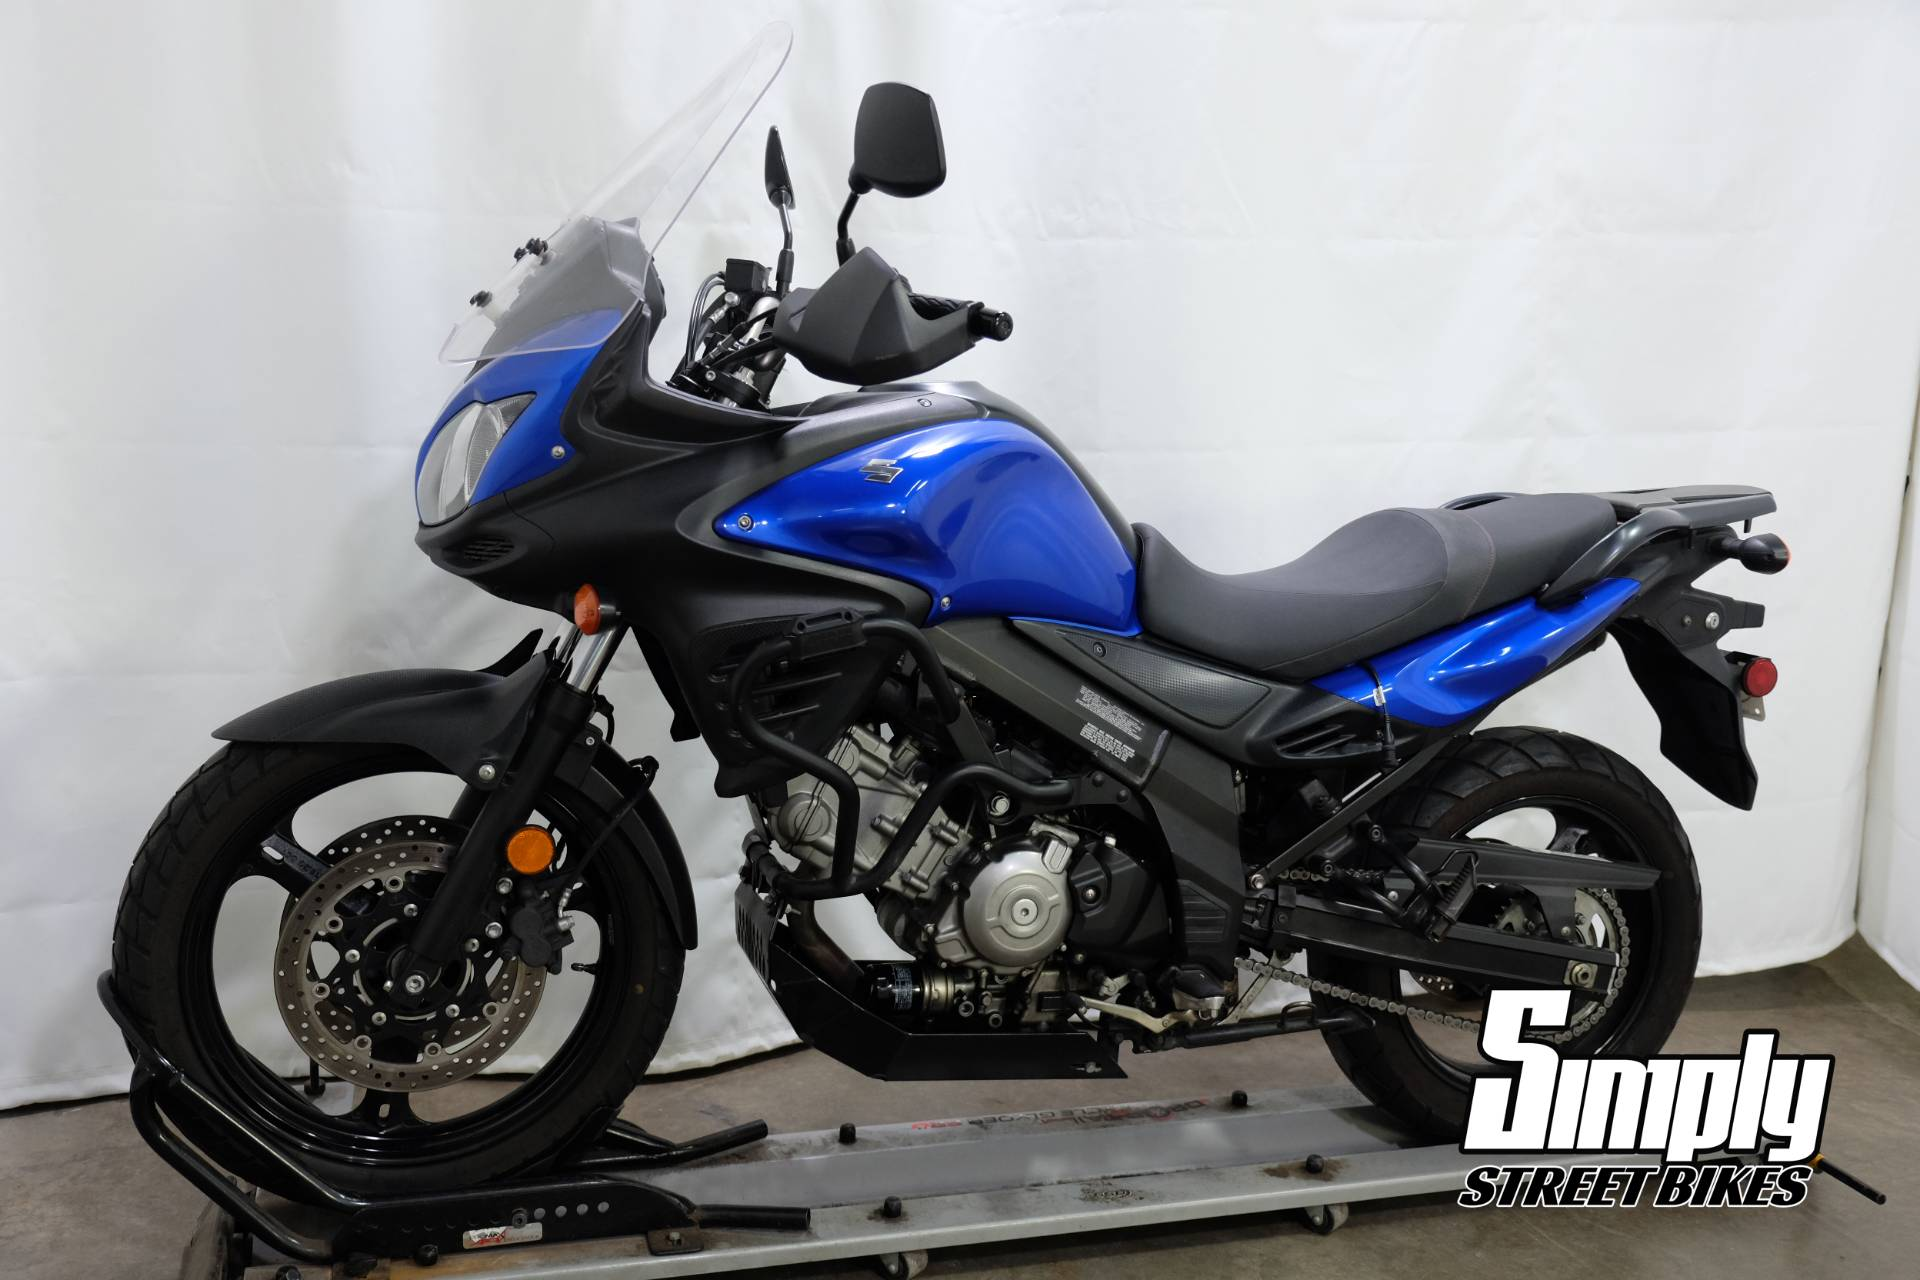 2013 Suzuki V-Strom 650 ABS in Eden Prairie, Minnesota - Photo 4